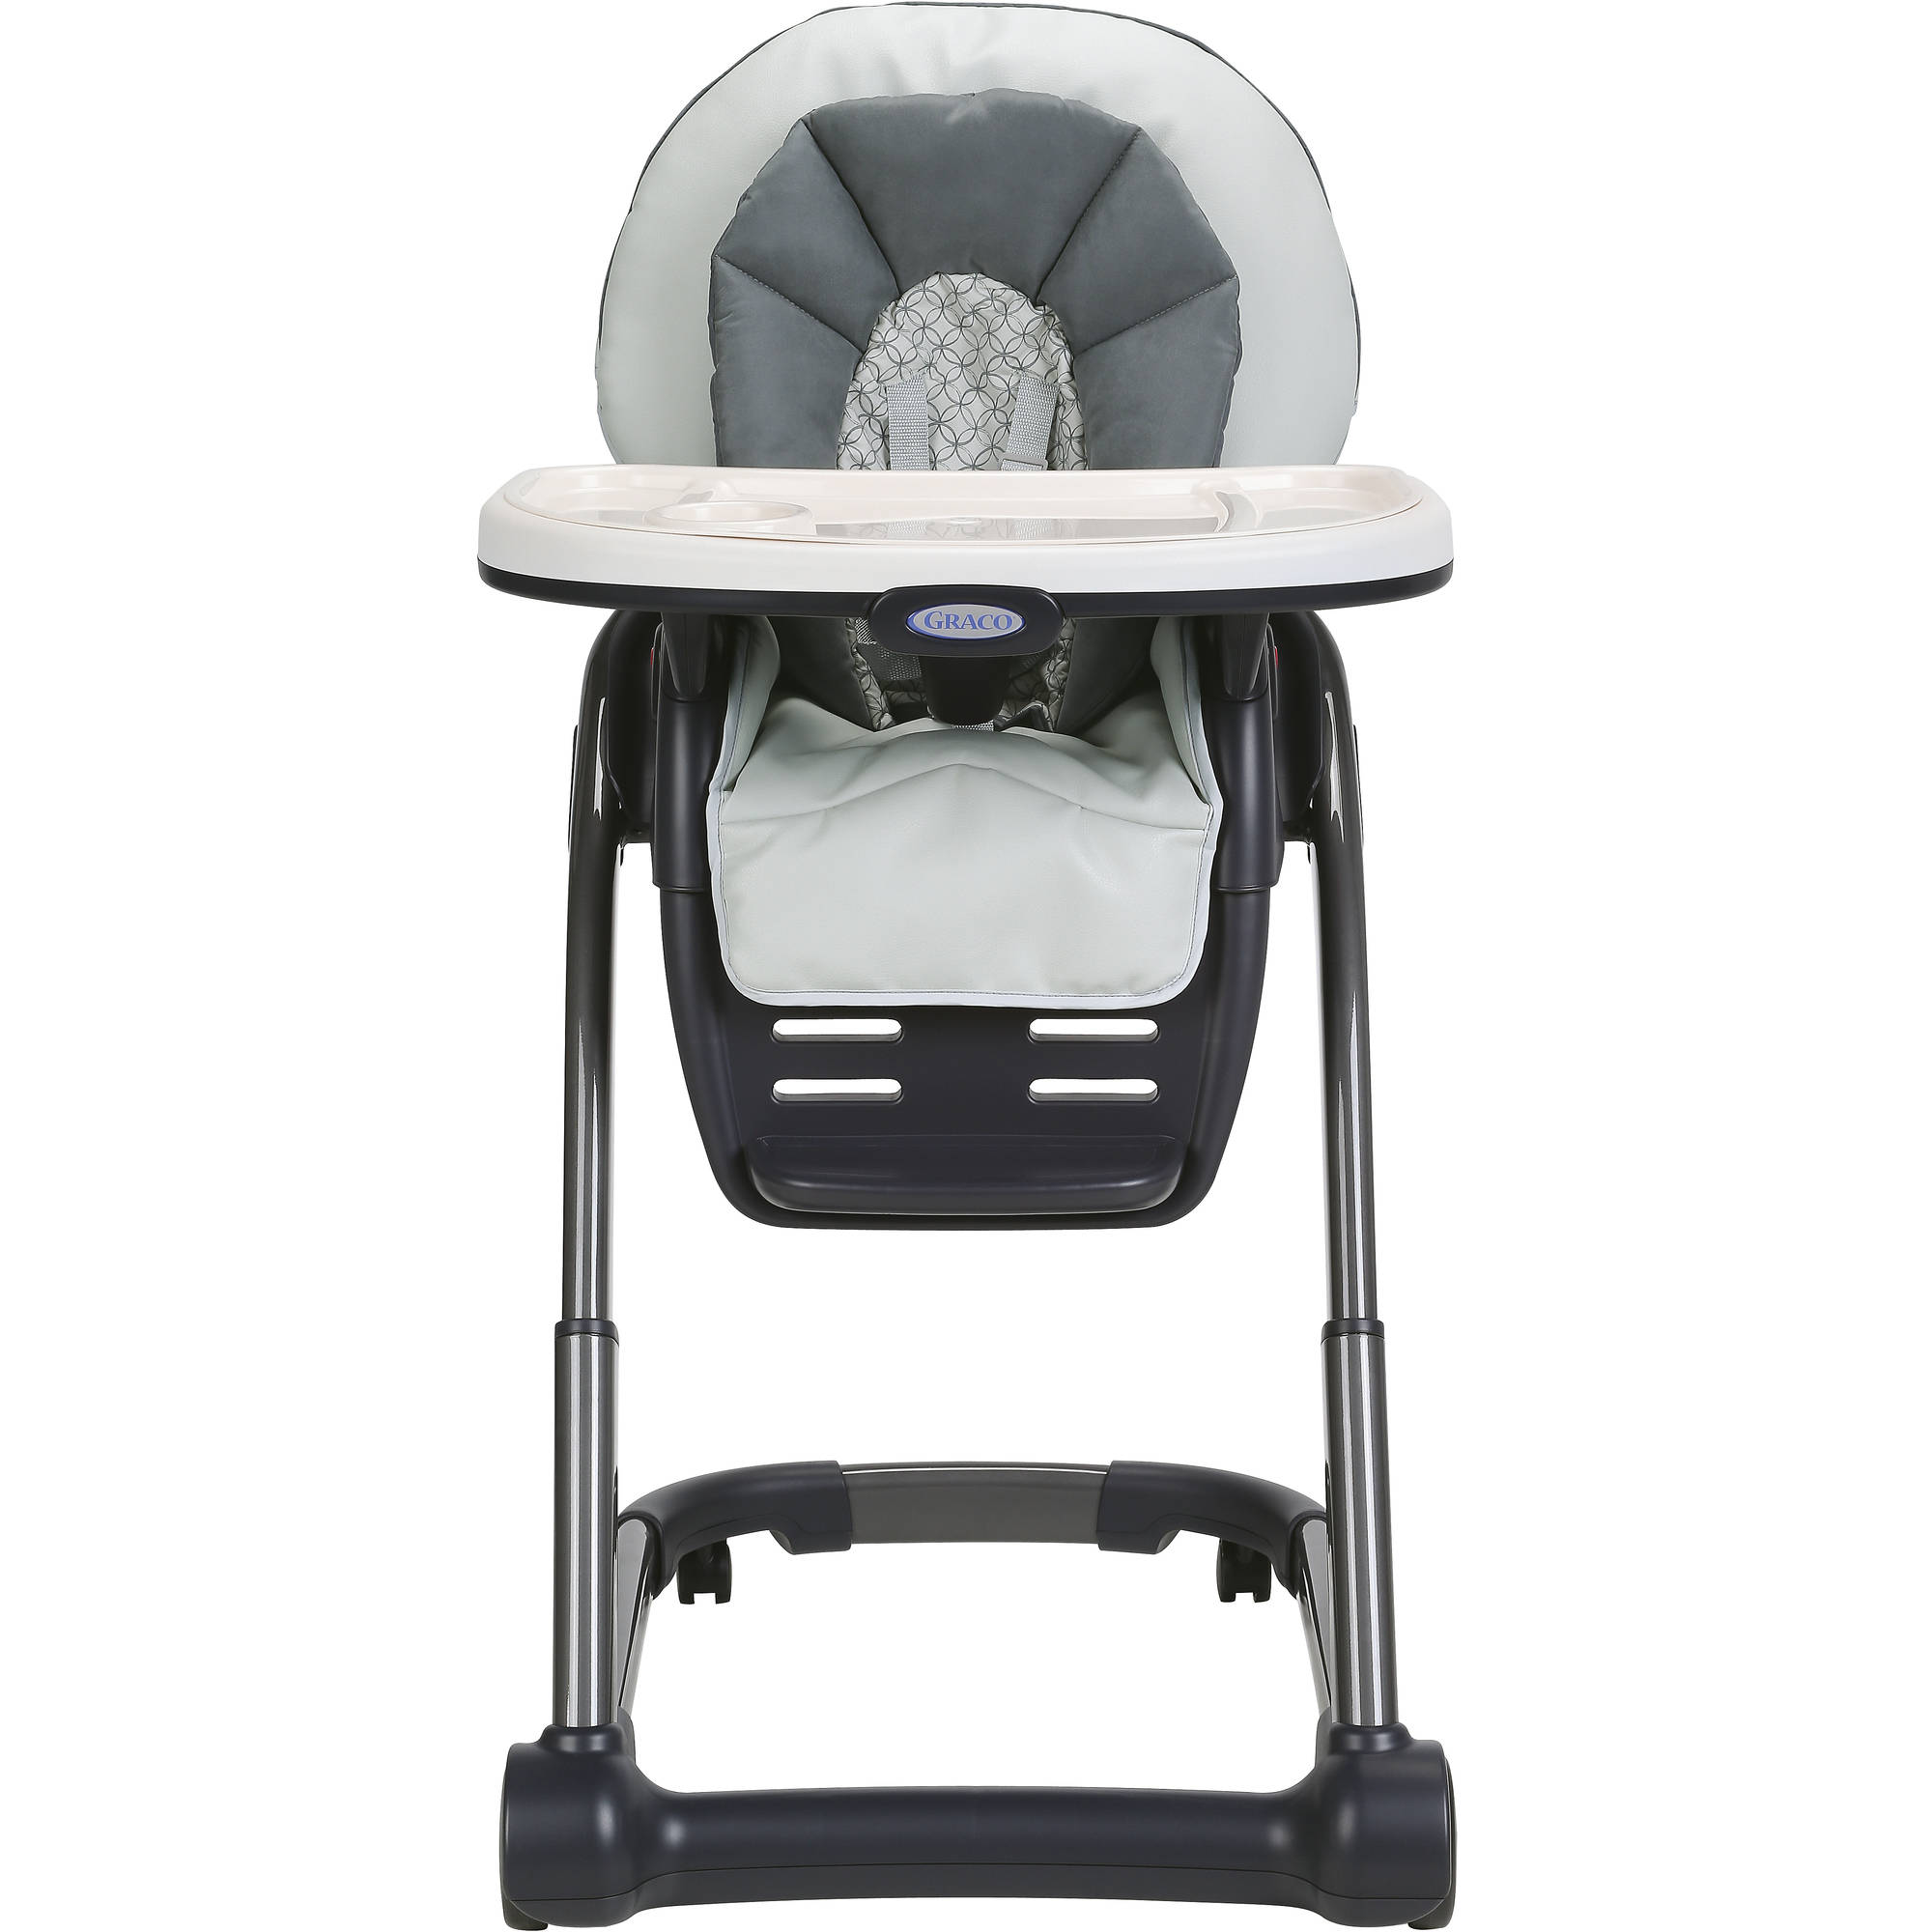 2017 05 graco blossom high chair colors - 2017 05 Graco Blossom High Chair Colors 11